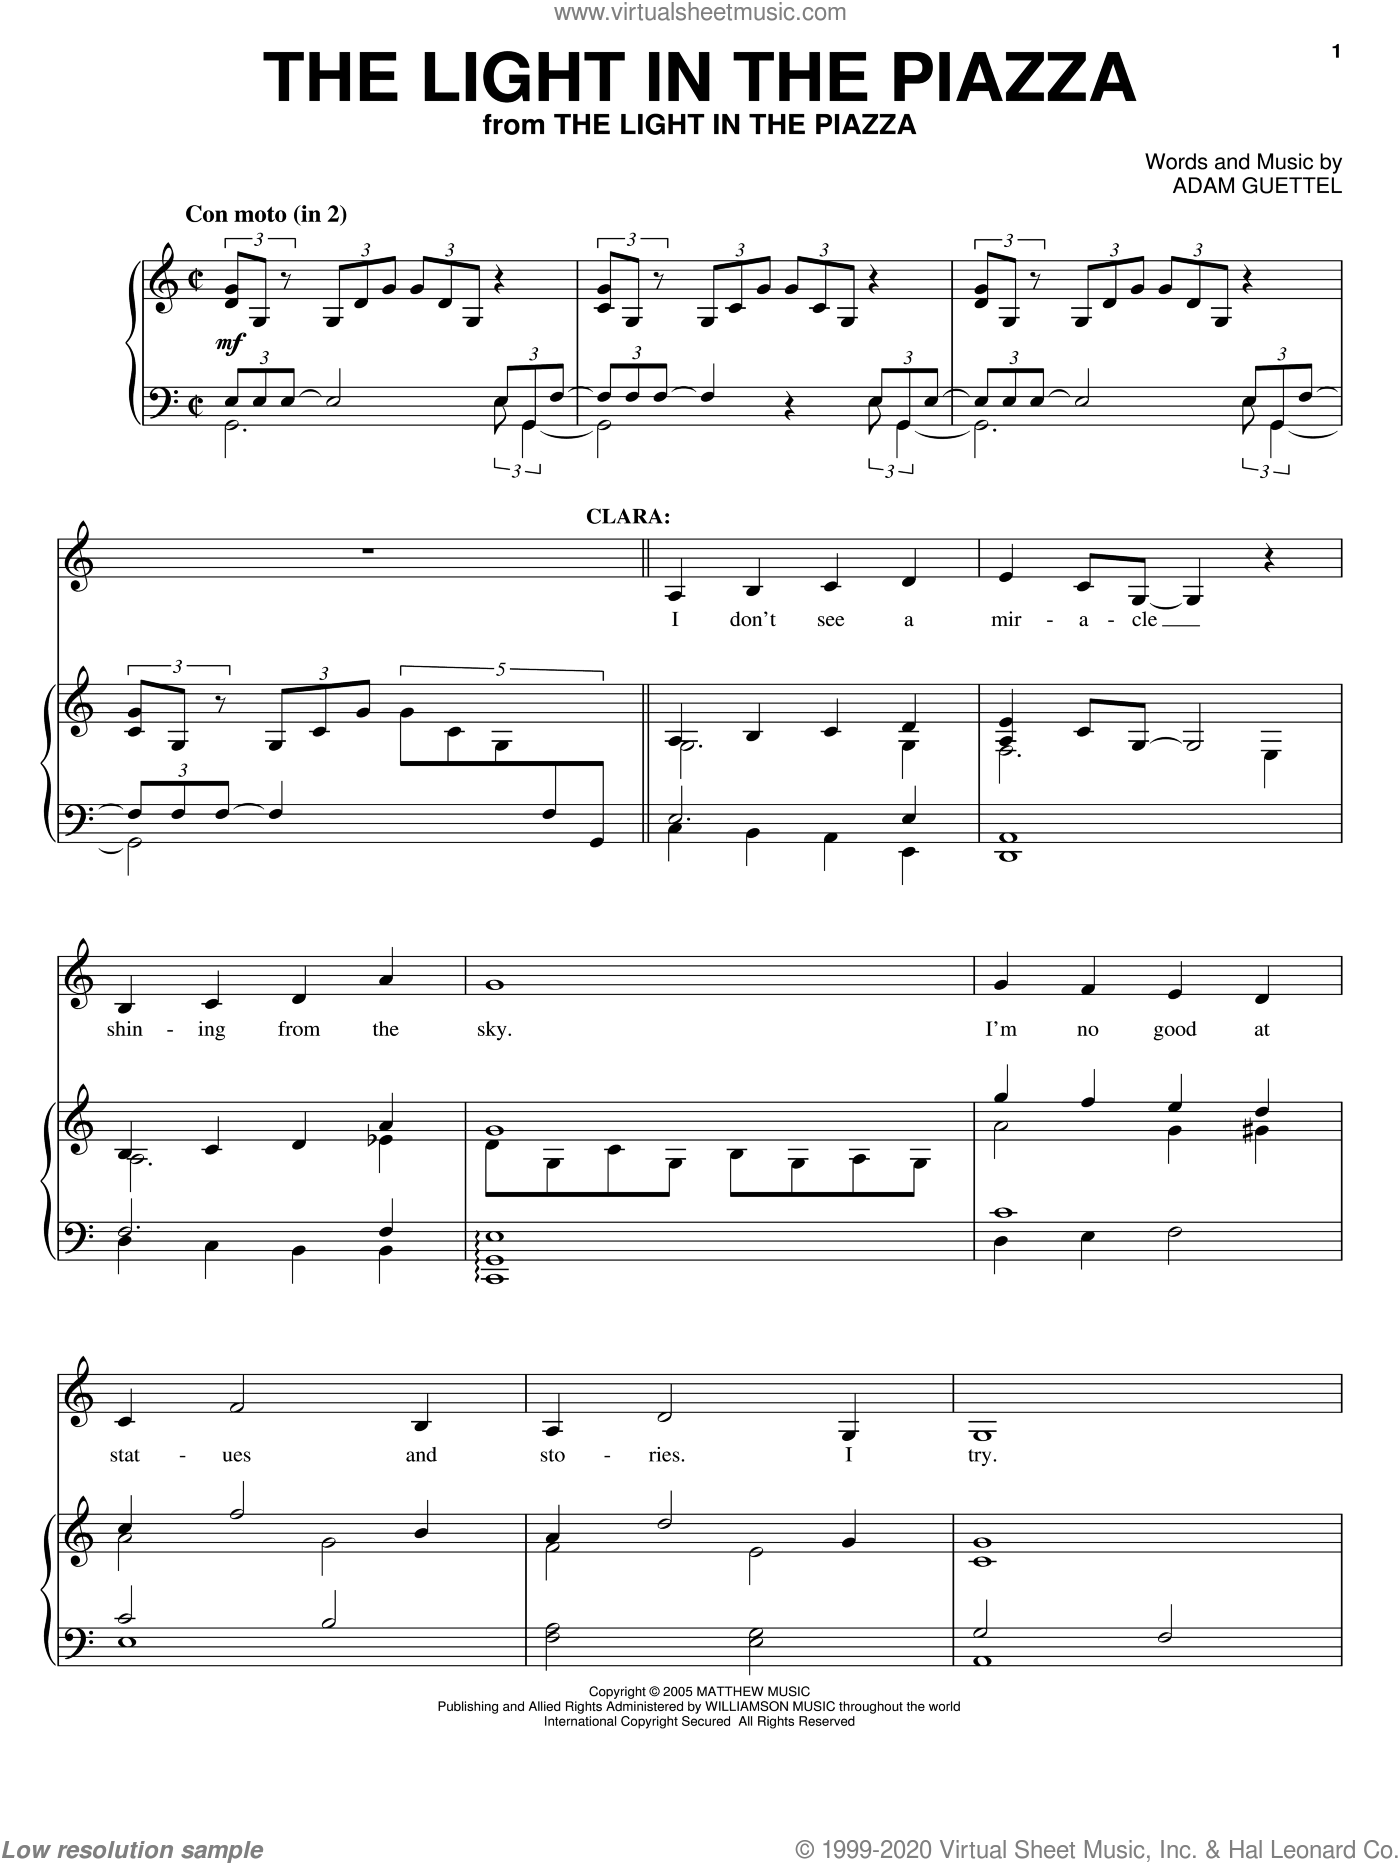 The Light In The Piazza sheet music for voice, piano or guitar by Adam Guettel. Score Image Preview.